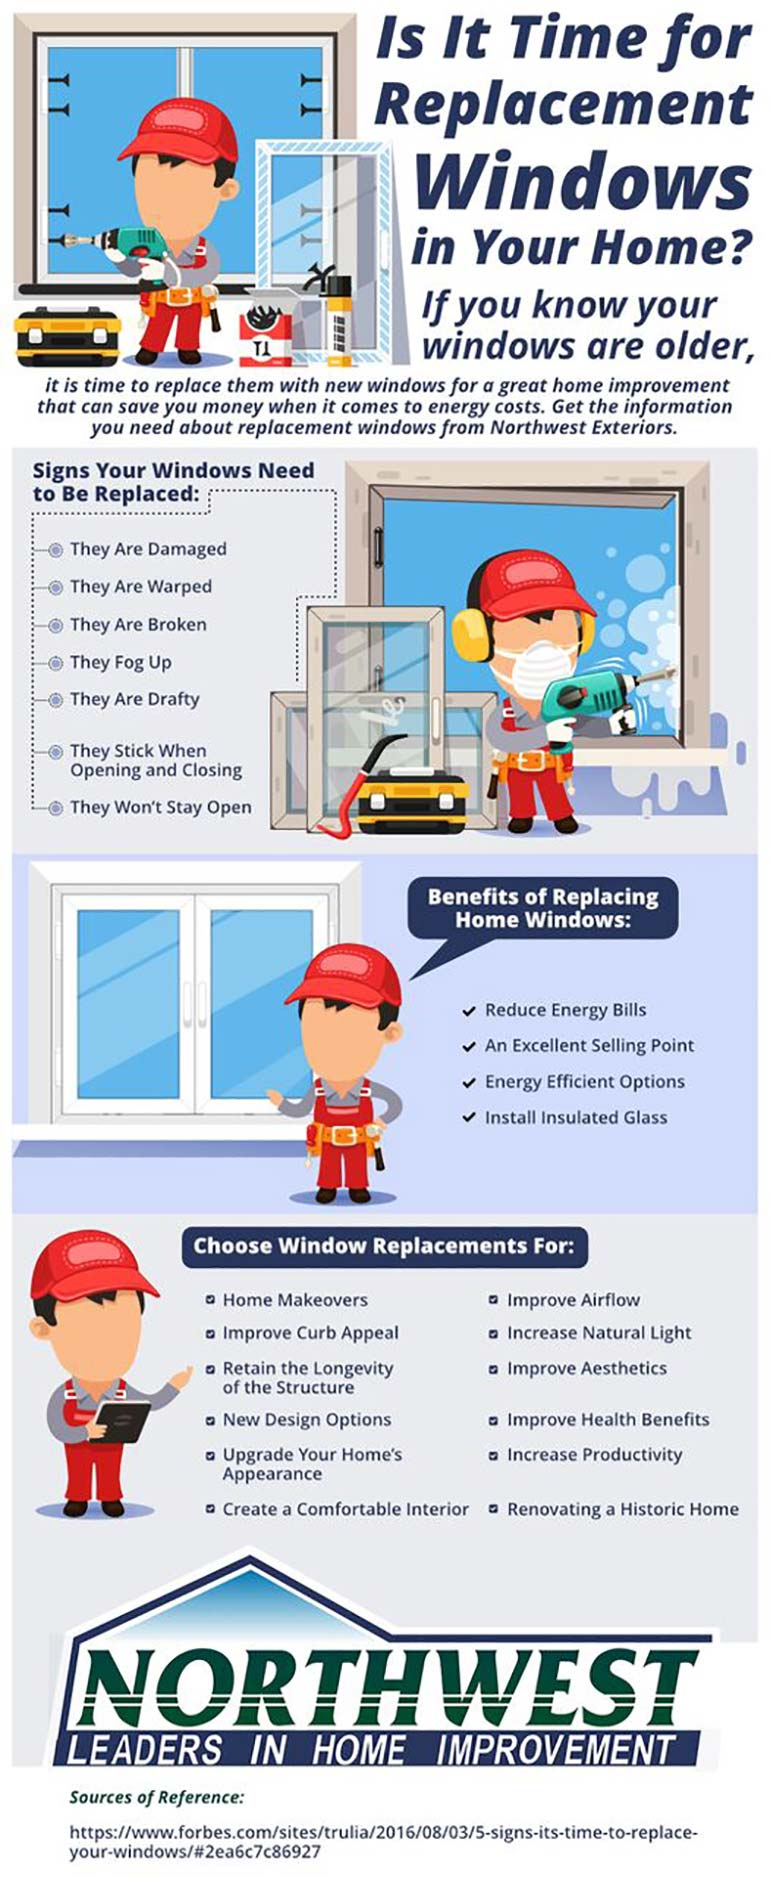 Graphic - Is it Time for Replacement Windows